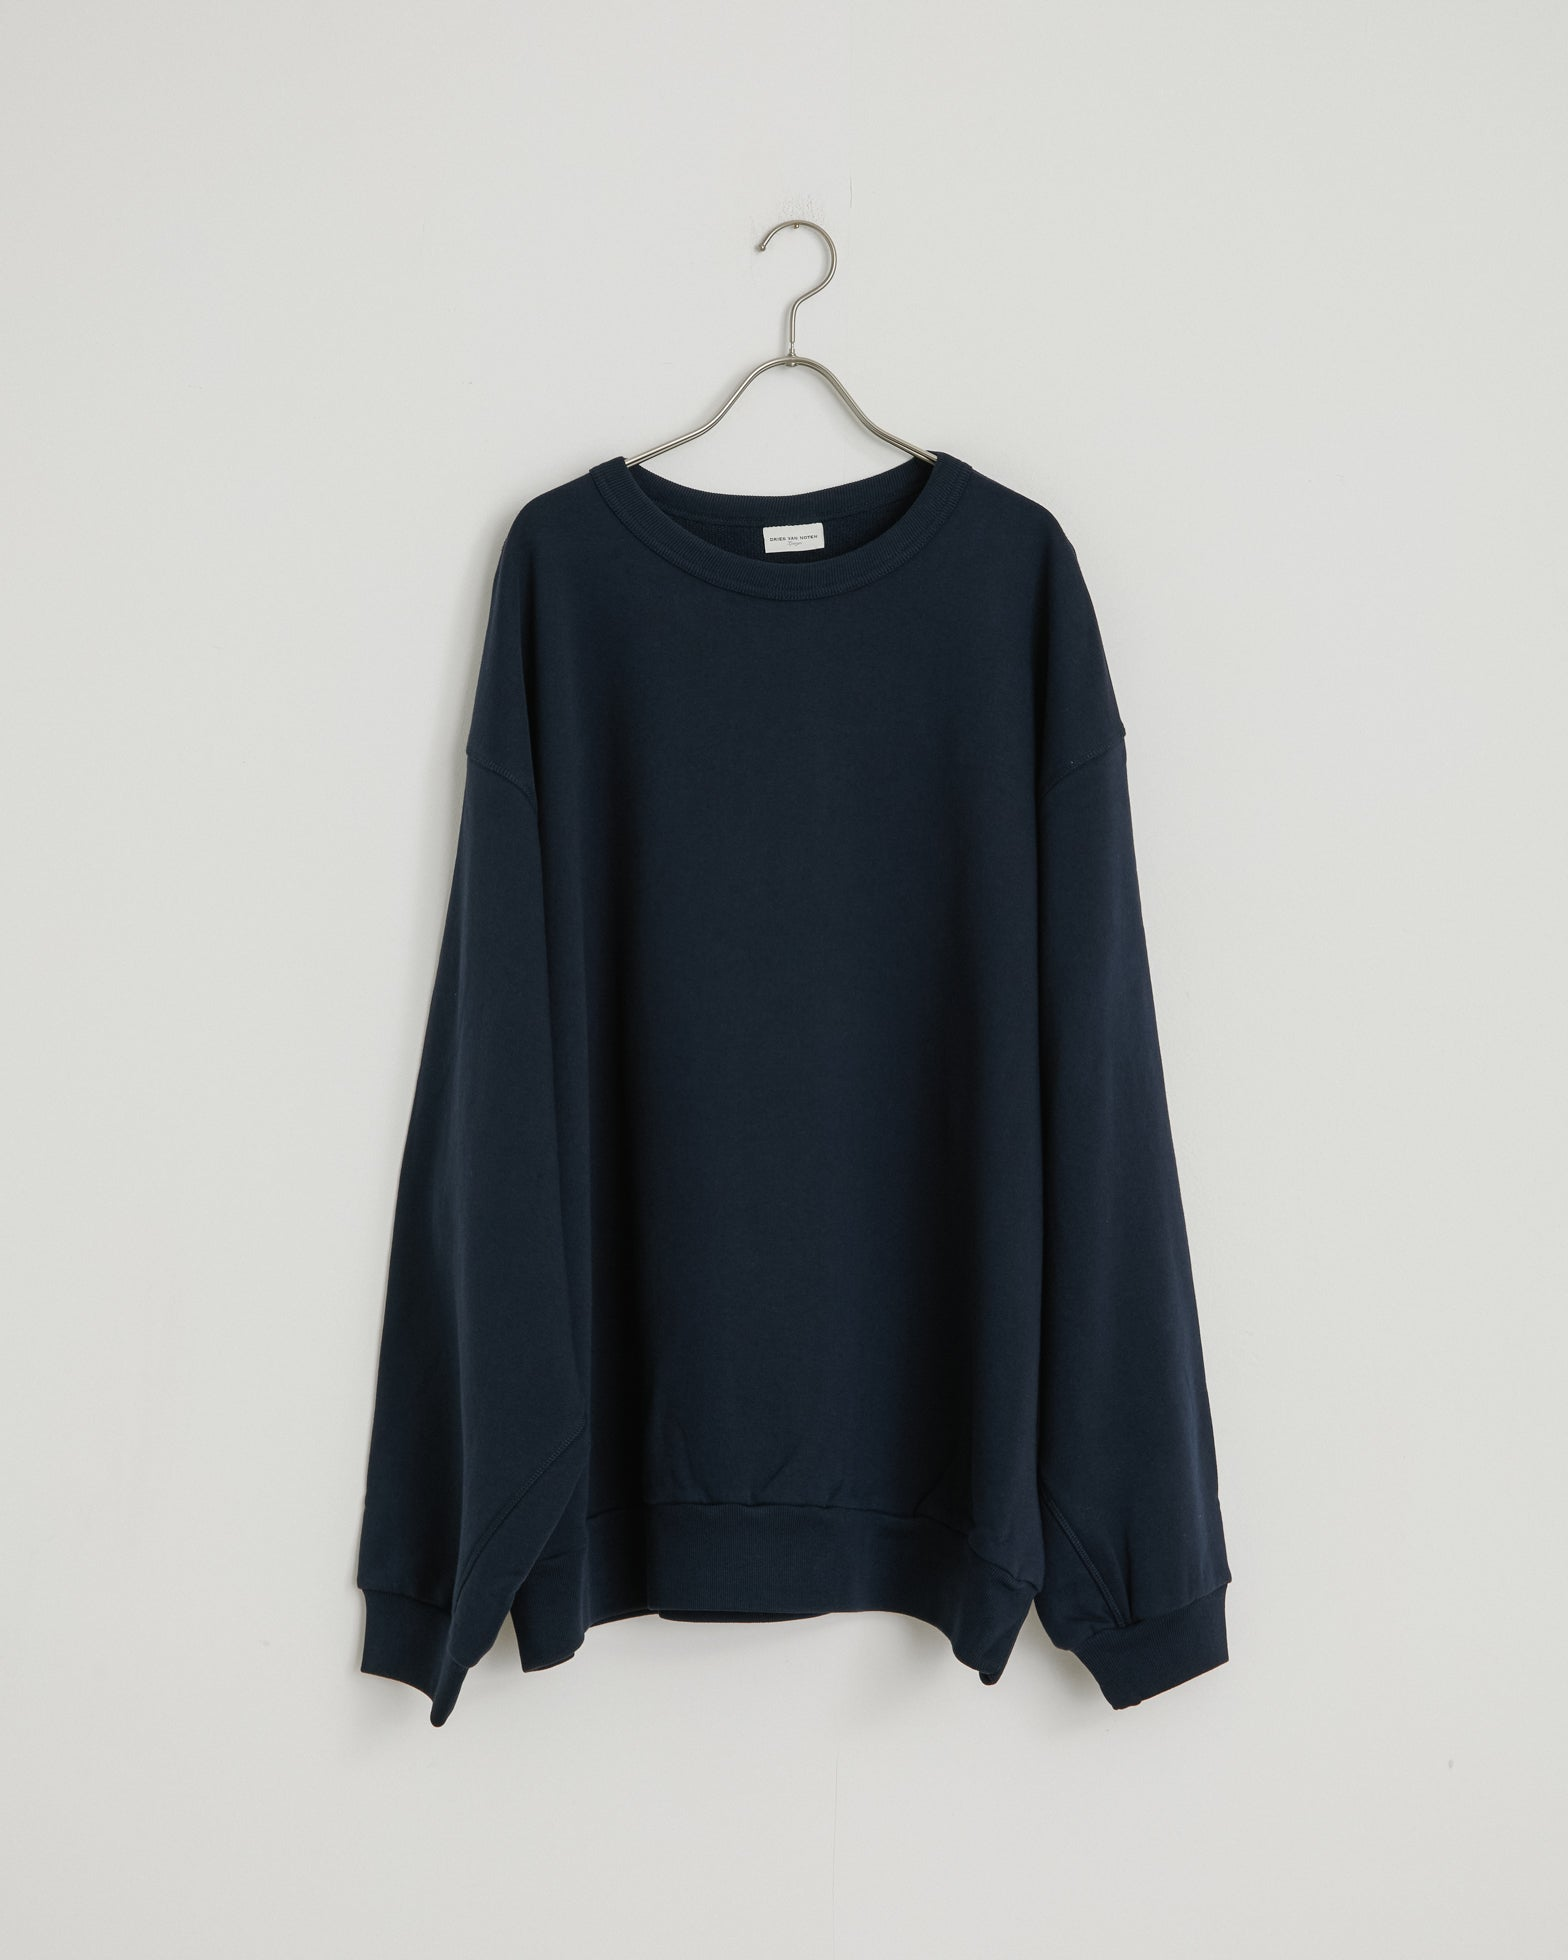 Hoxti 1606 Sweater in Navy